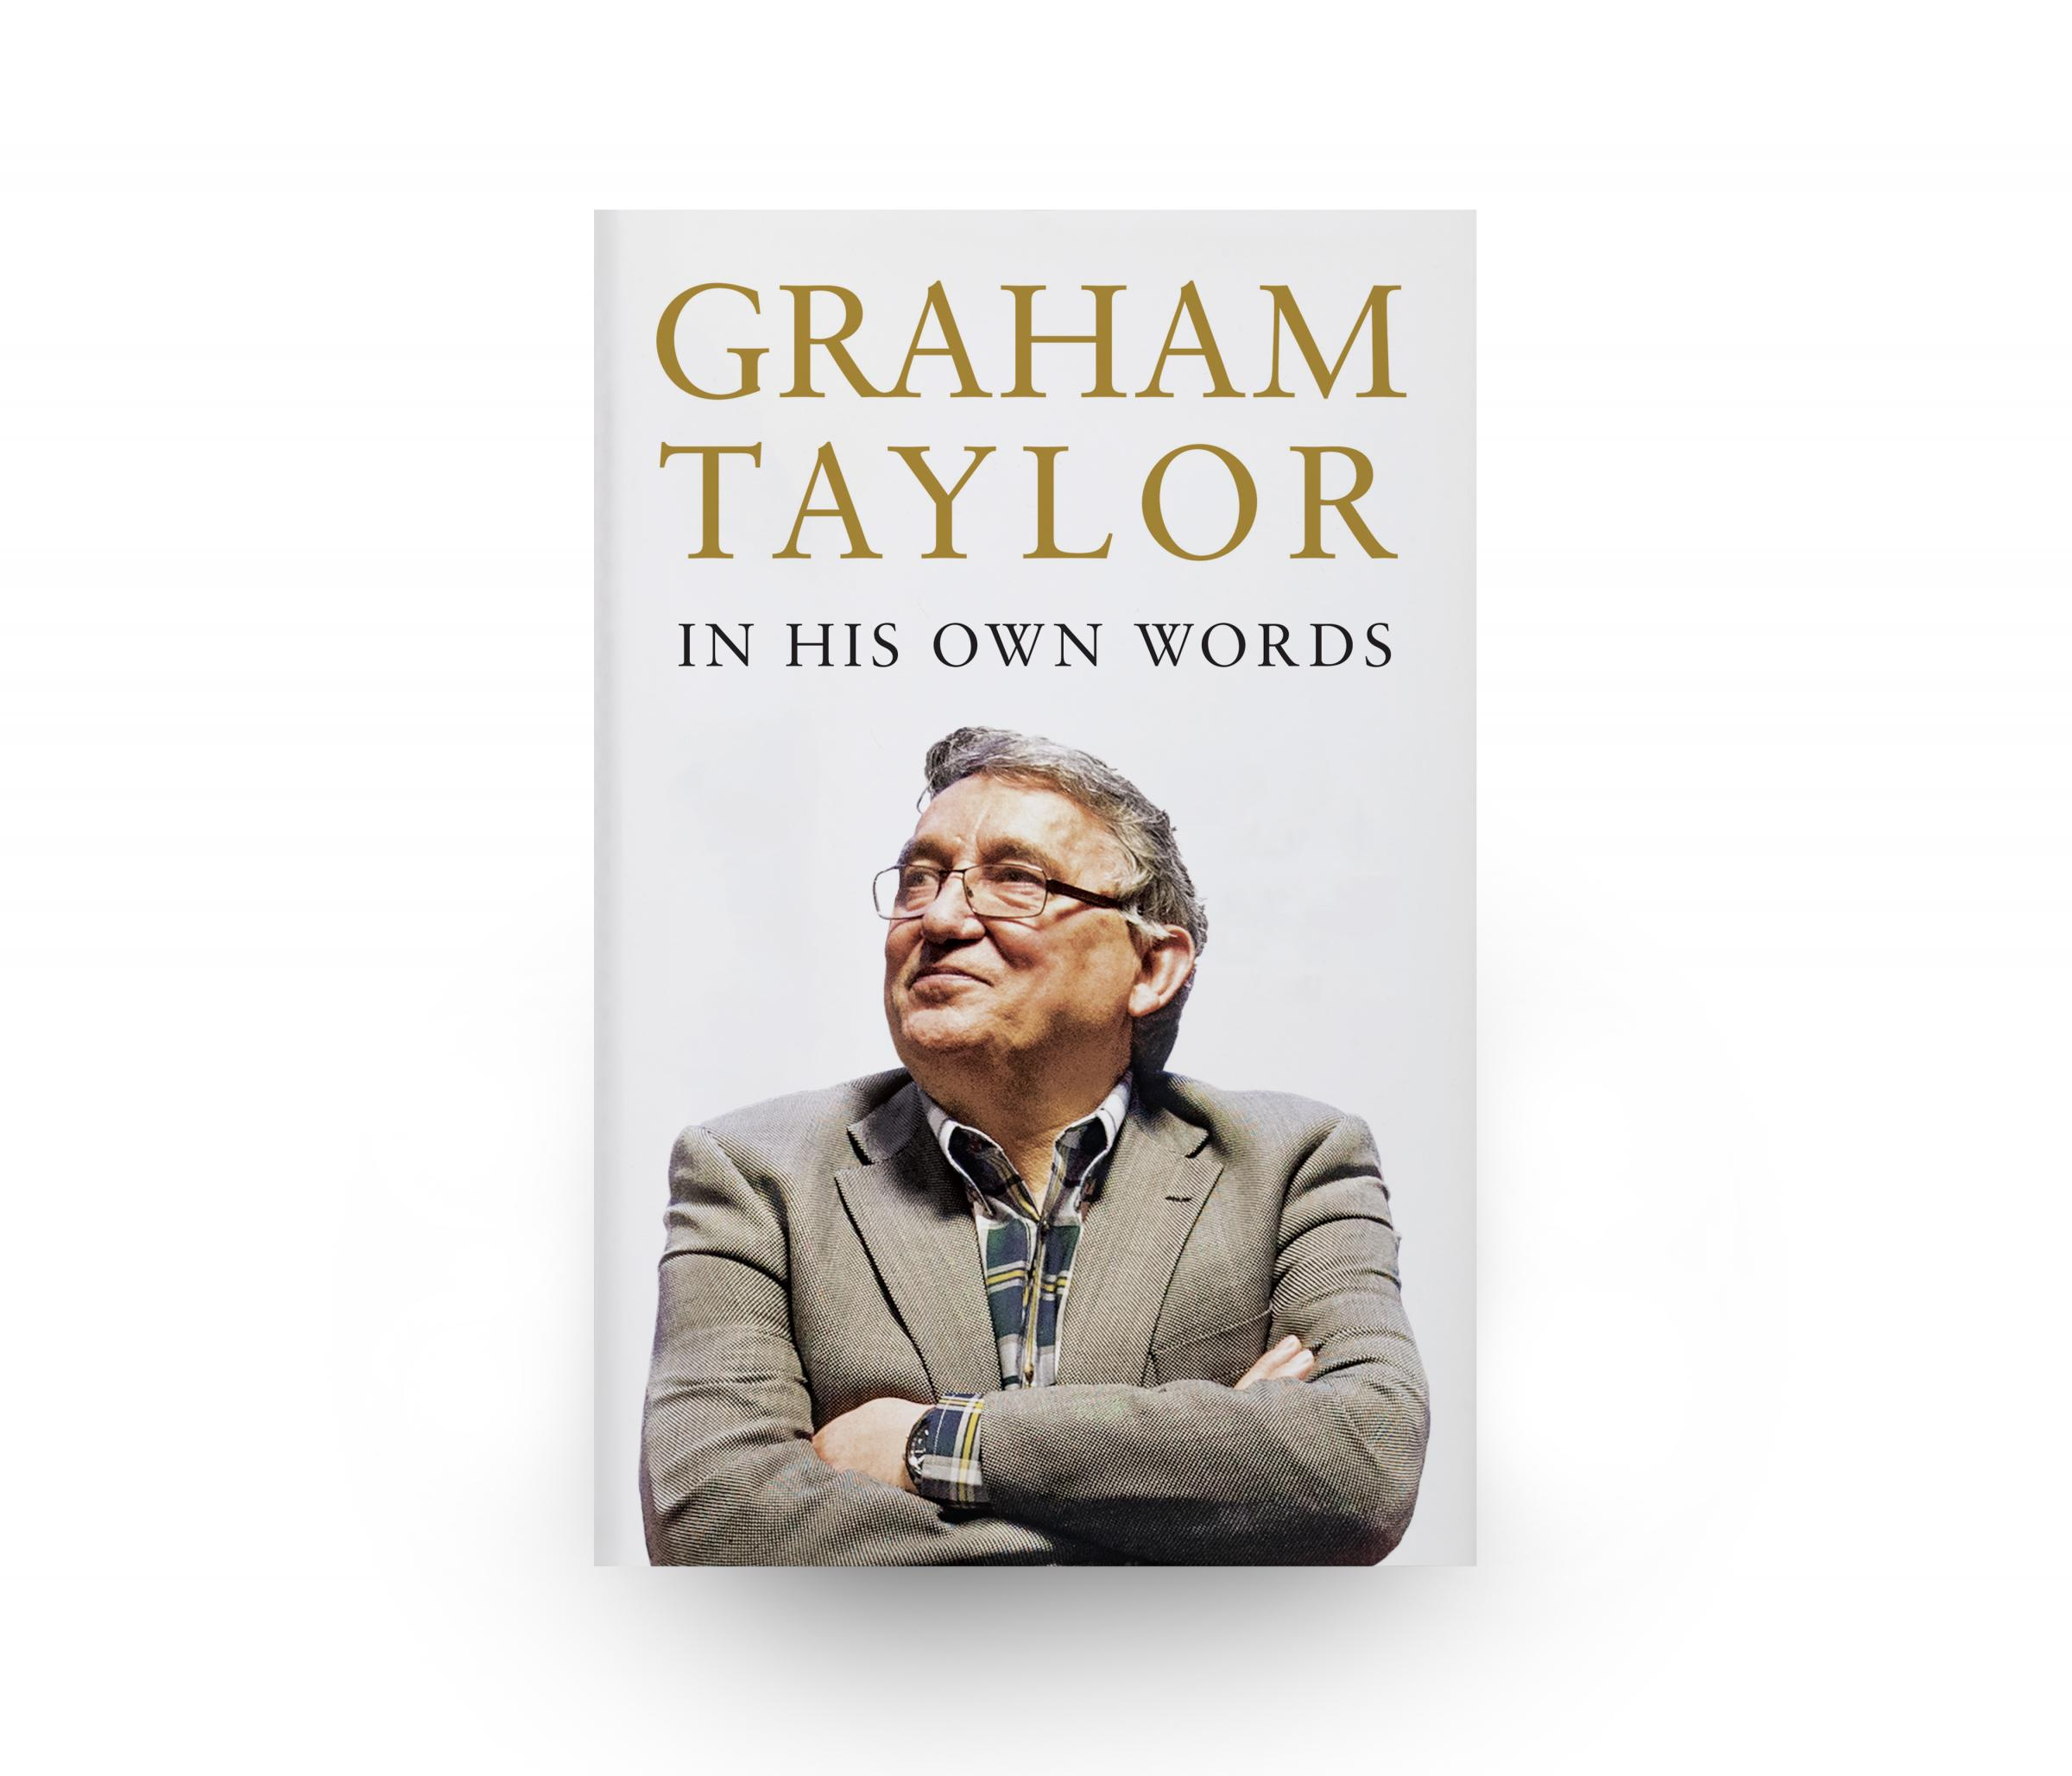 Graham Taylor: In His Own Words is to be published on November 30